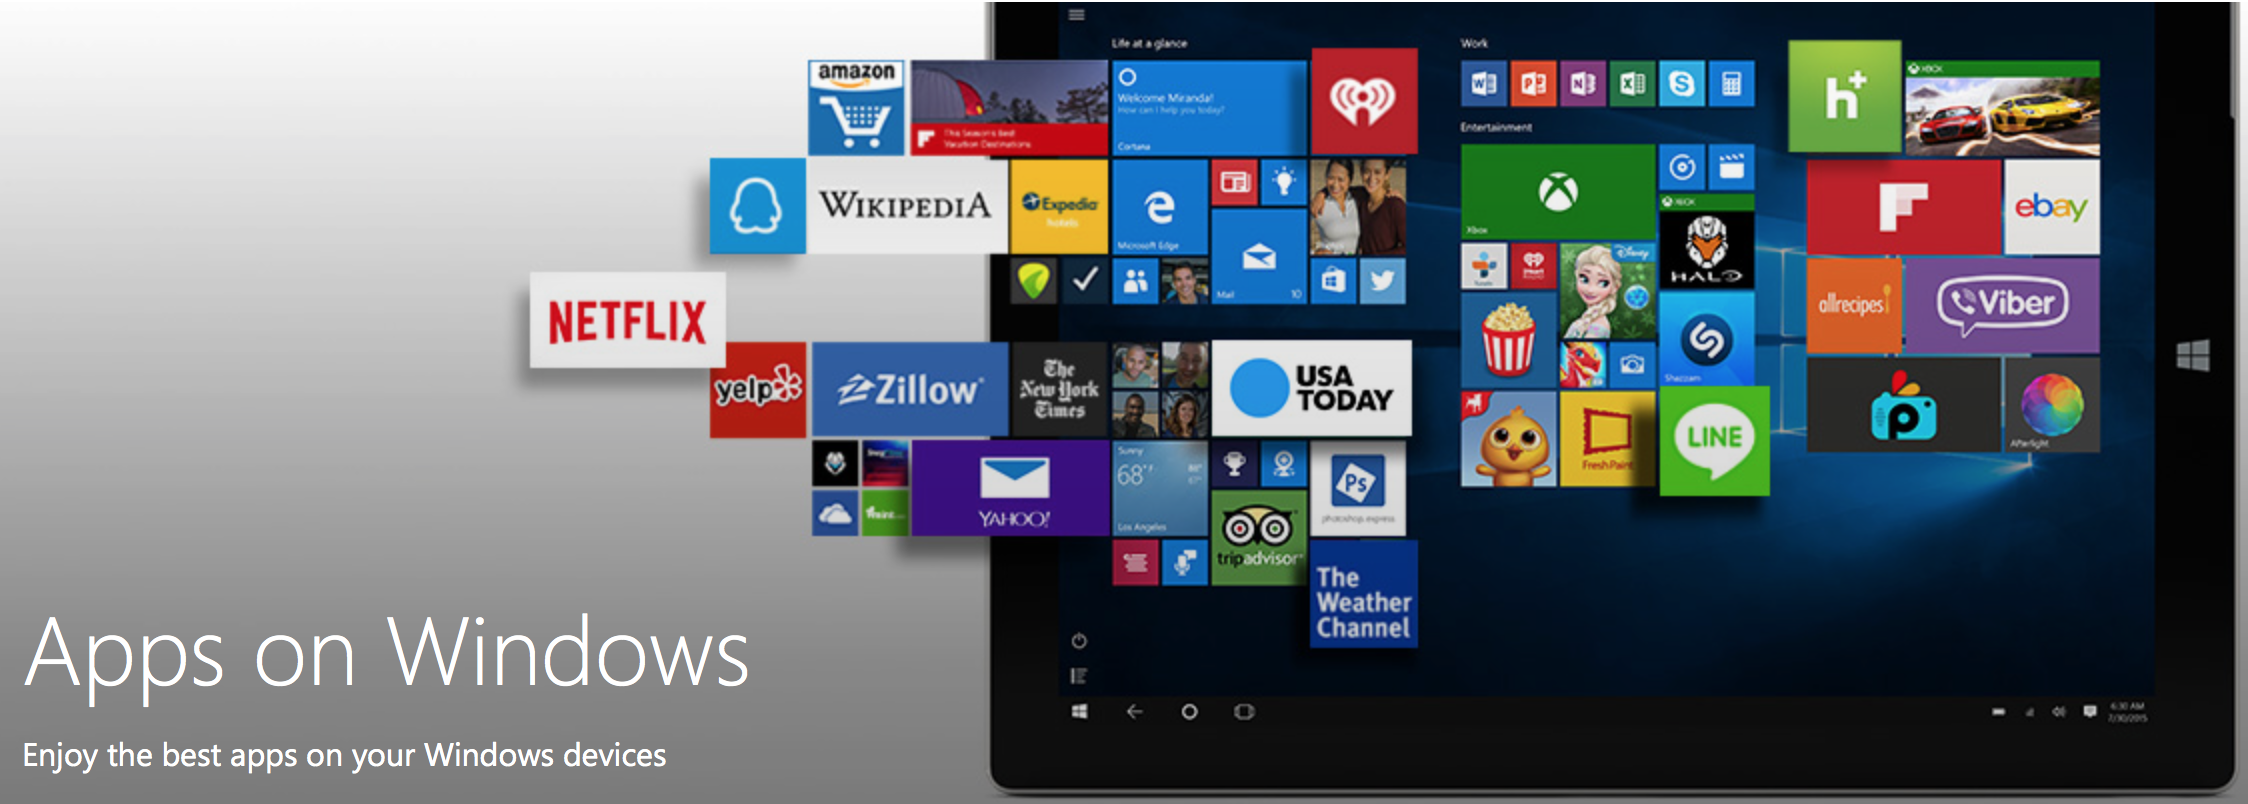 Microsoft Offers Universal App Store for PC and Mobile | iPhoneLife com